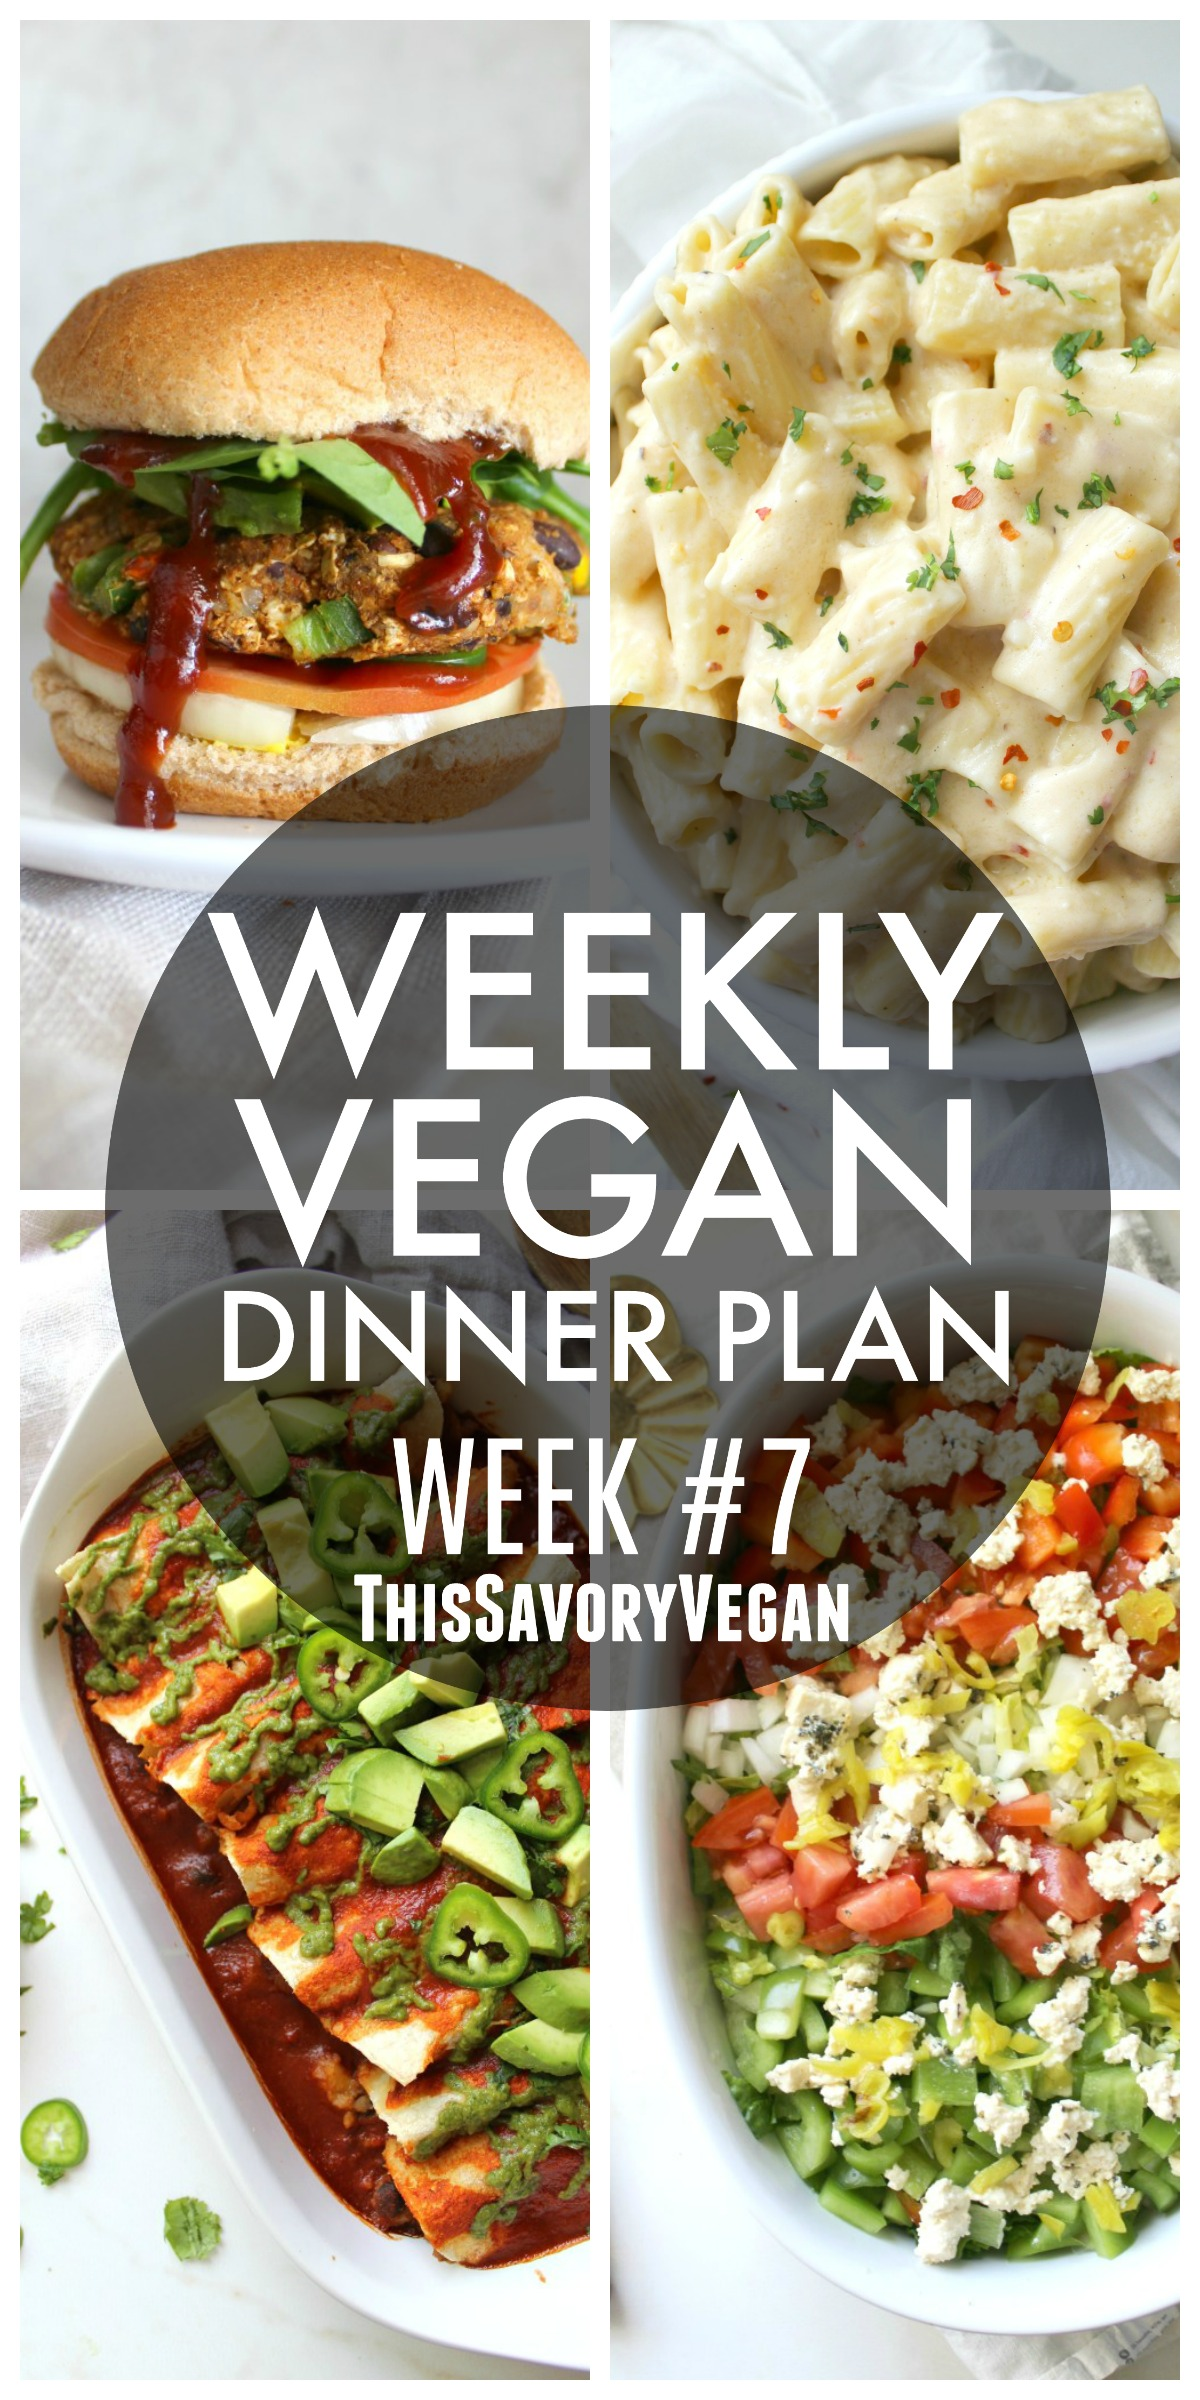 5 nights worth of vegan dinners to help inspire your menu. Choose one recipe to add to your rotation or make them all - shopping list included   ThisSavoryVegan.com #vegan #mealprep